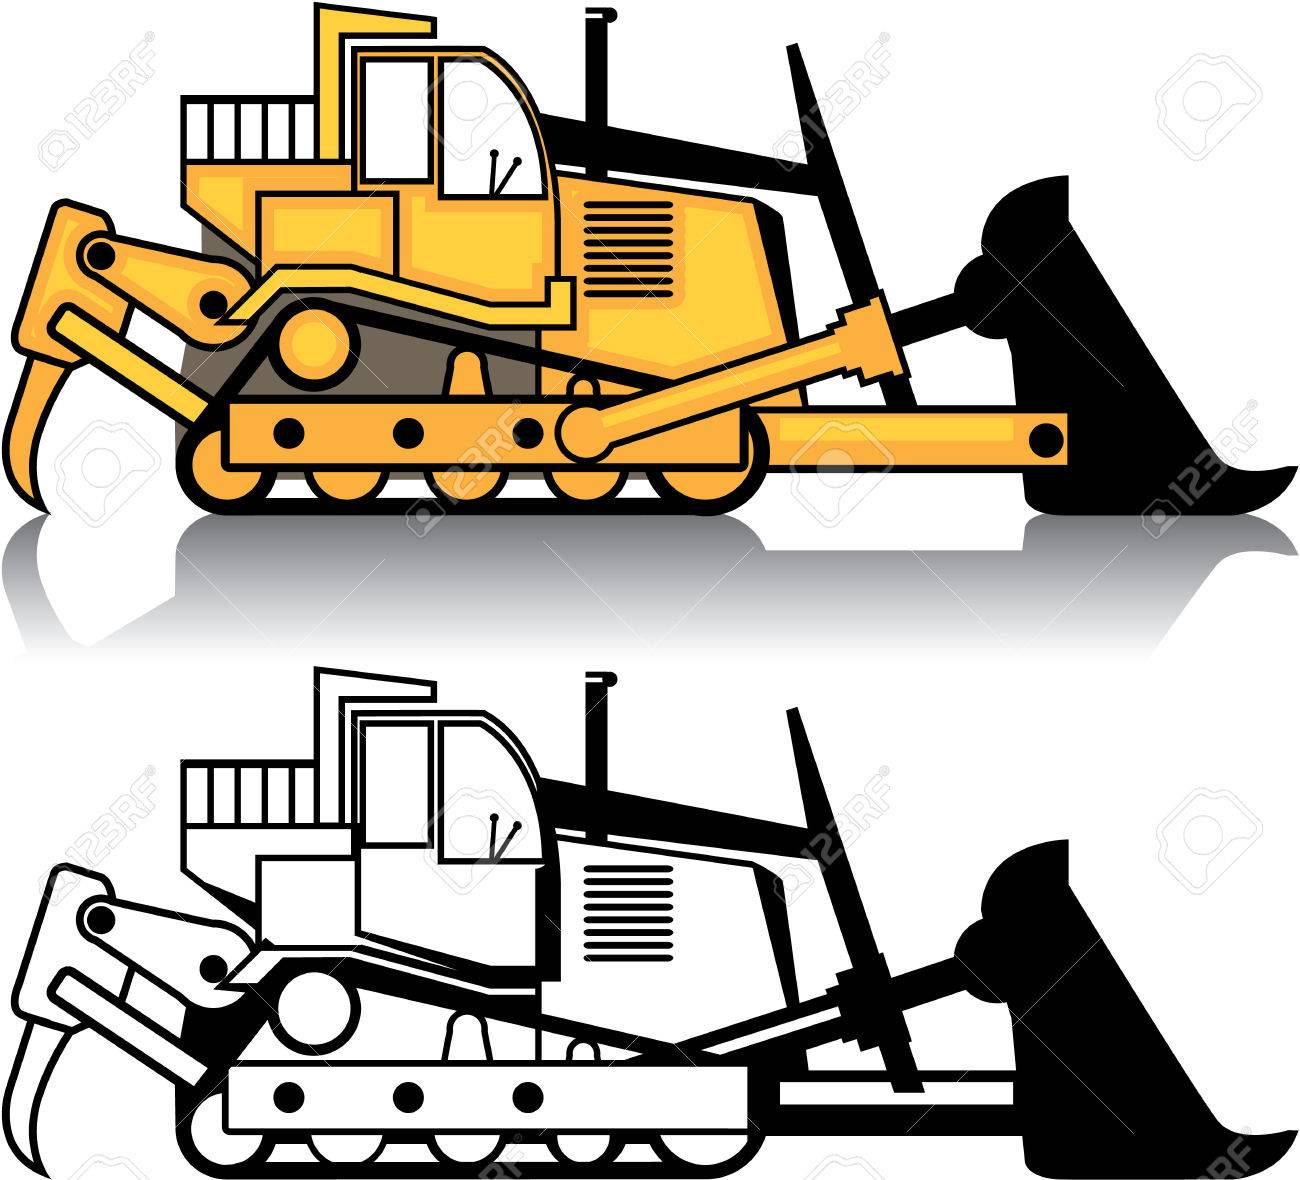 dozer vehicle vector illustration clip art image royalty free rh 123rf com caterpillar dozer clipart Cat Dozer Clip Art